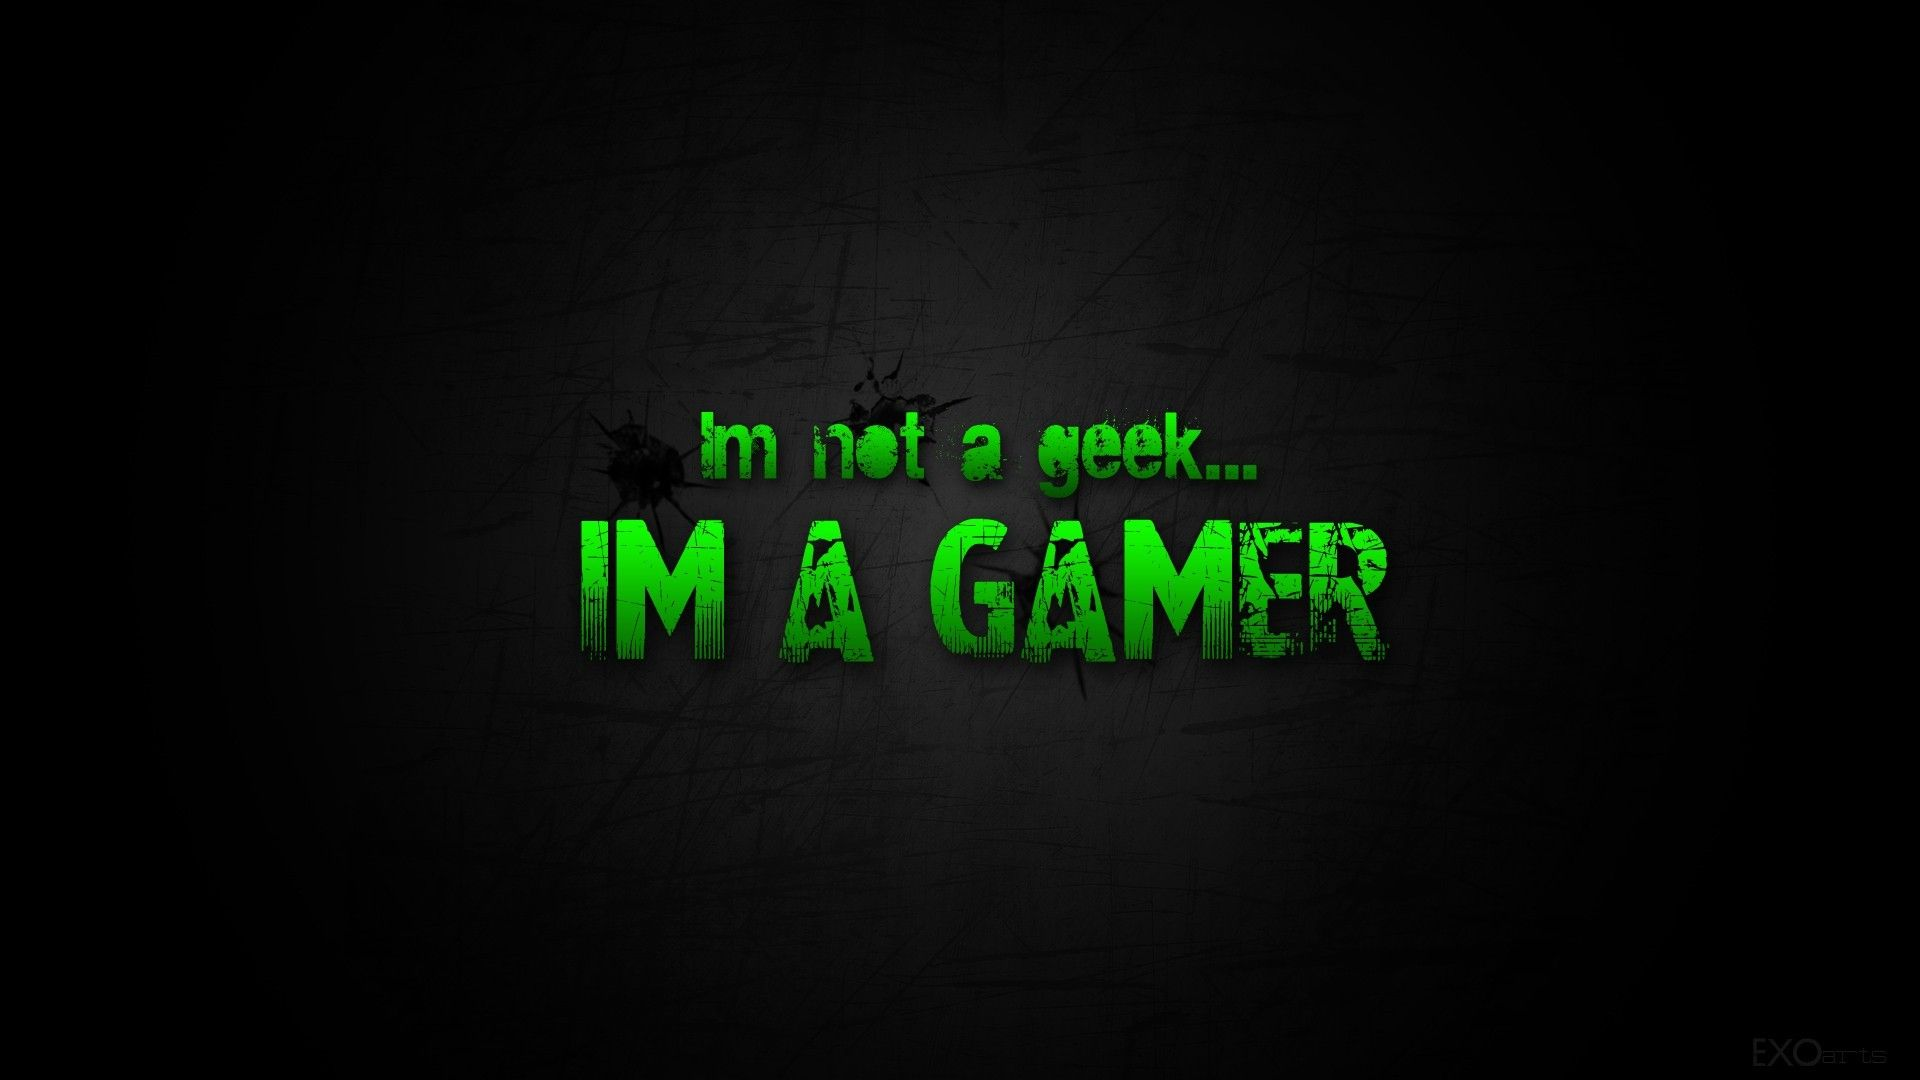 Gamers Video Games Typography Gray Minimalism Simple Background 1920x1080 Wallpaper Wallhaven Cc Gamer Quotes Computer Wallpaper Hd Gaming Wallpapers